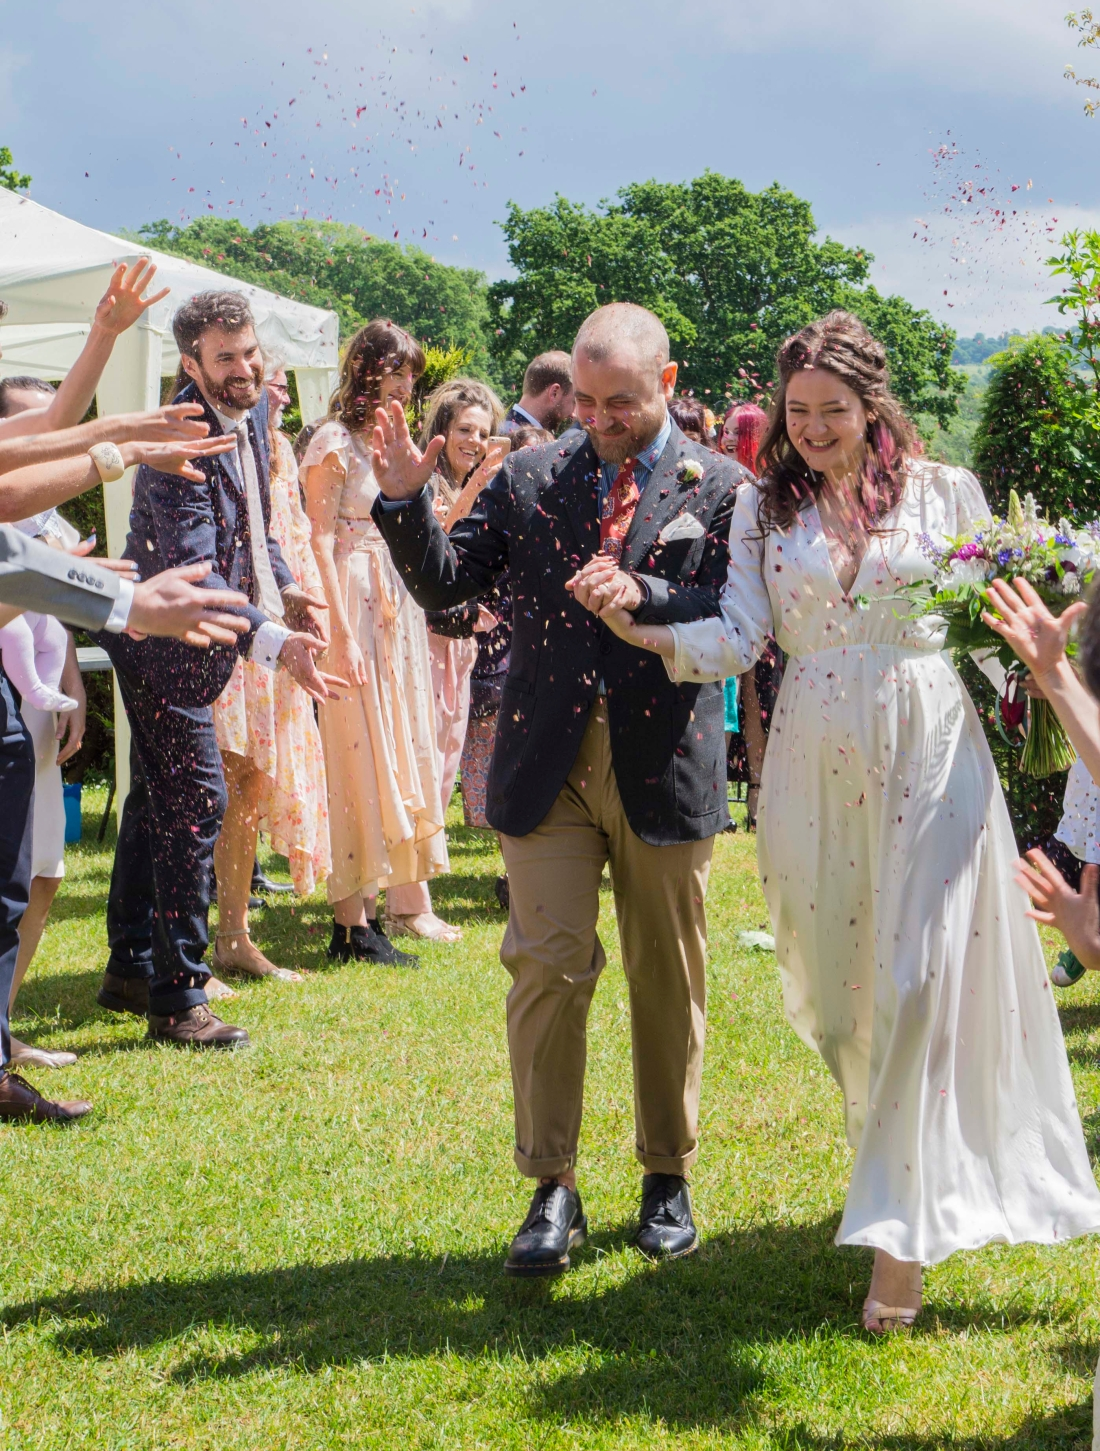 The Bride and Groom walk amongst their guests in a cloud of confetti, they are laughing